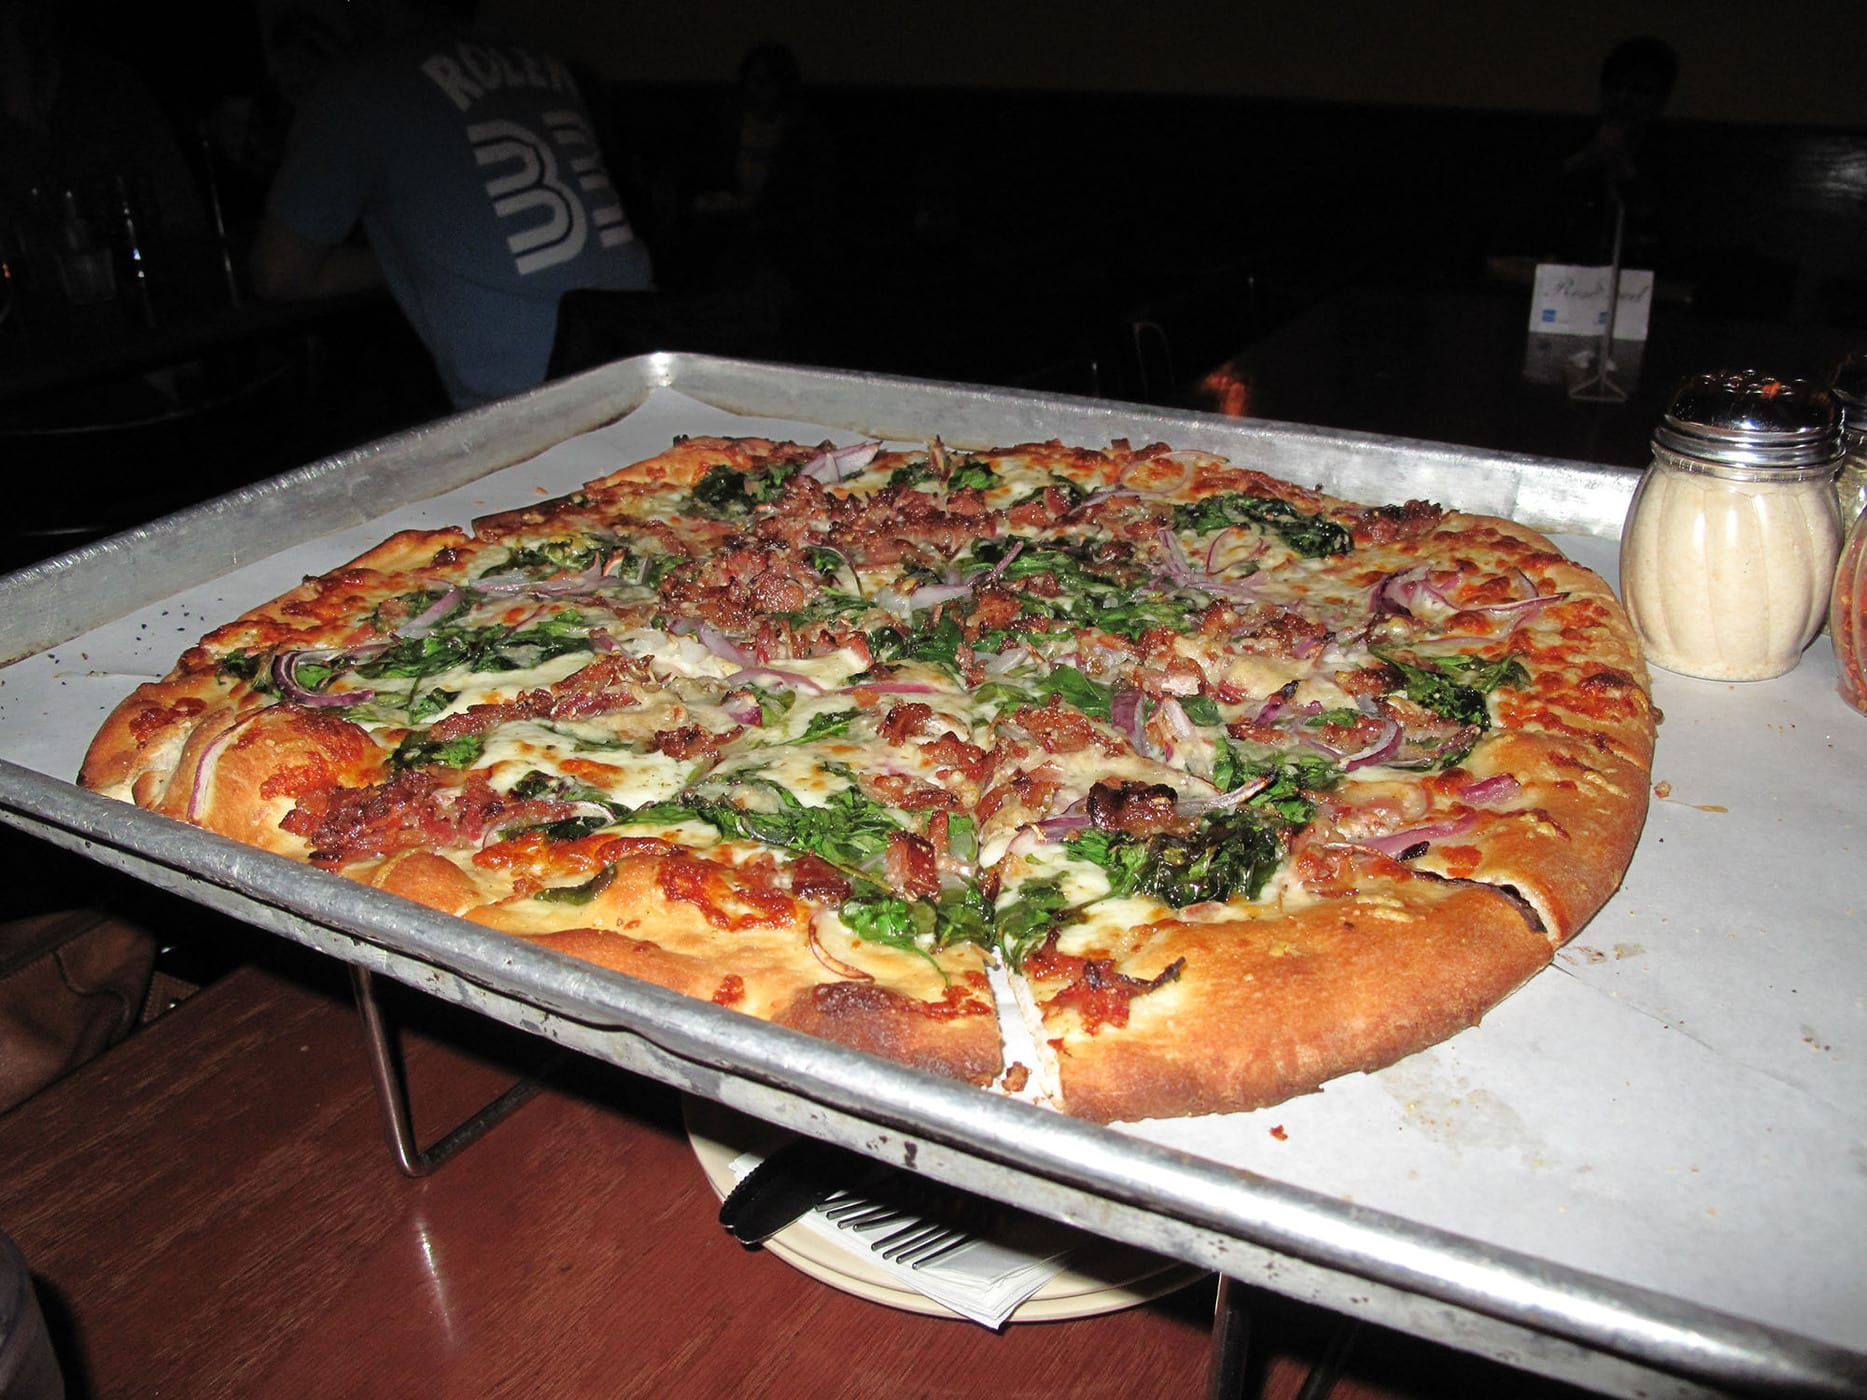 Pizza with spinach, red onions, and bacon, from Piece Brewery and Pizzeria in Chicago